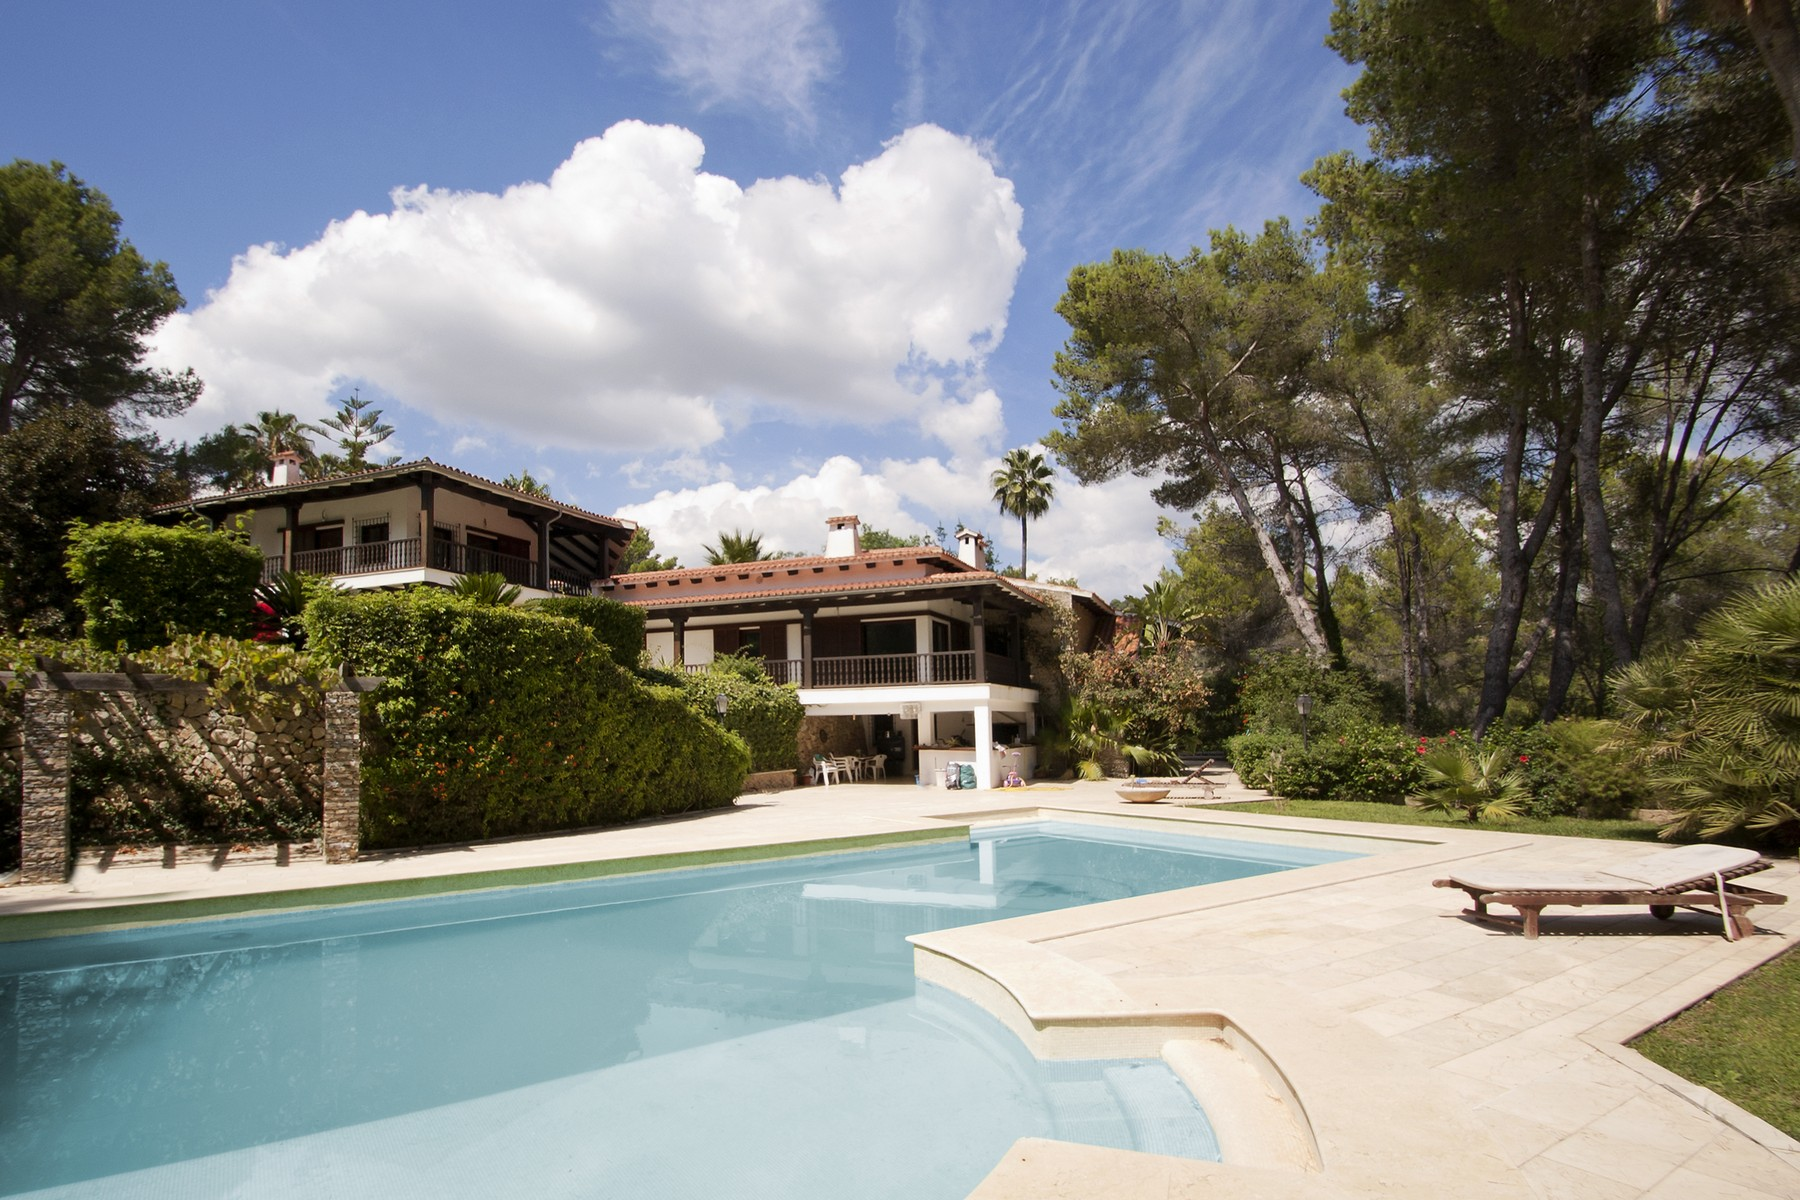 Multi-Family Home for Sale at Frontline golf Villa to be refurbished in Son Vida Palma Son Vida, Mallorca, 07181 Spain